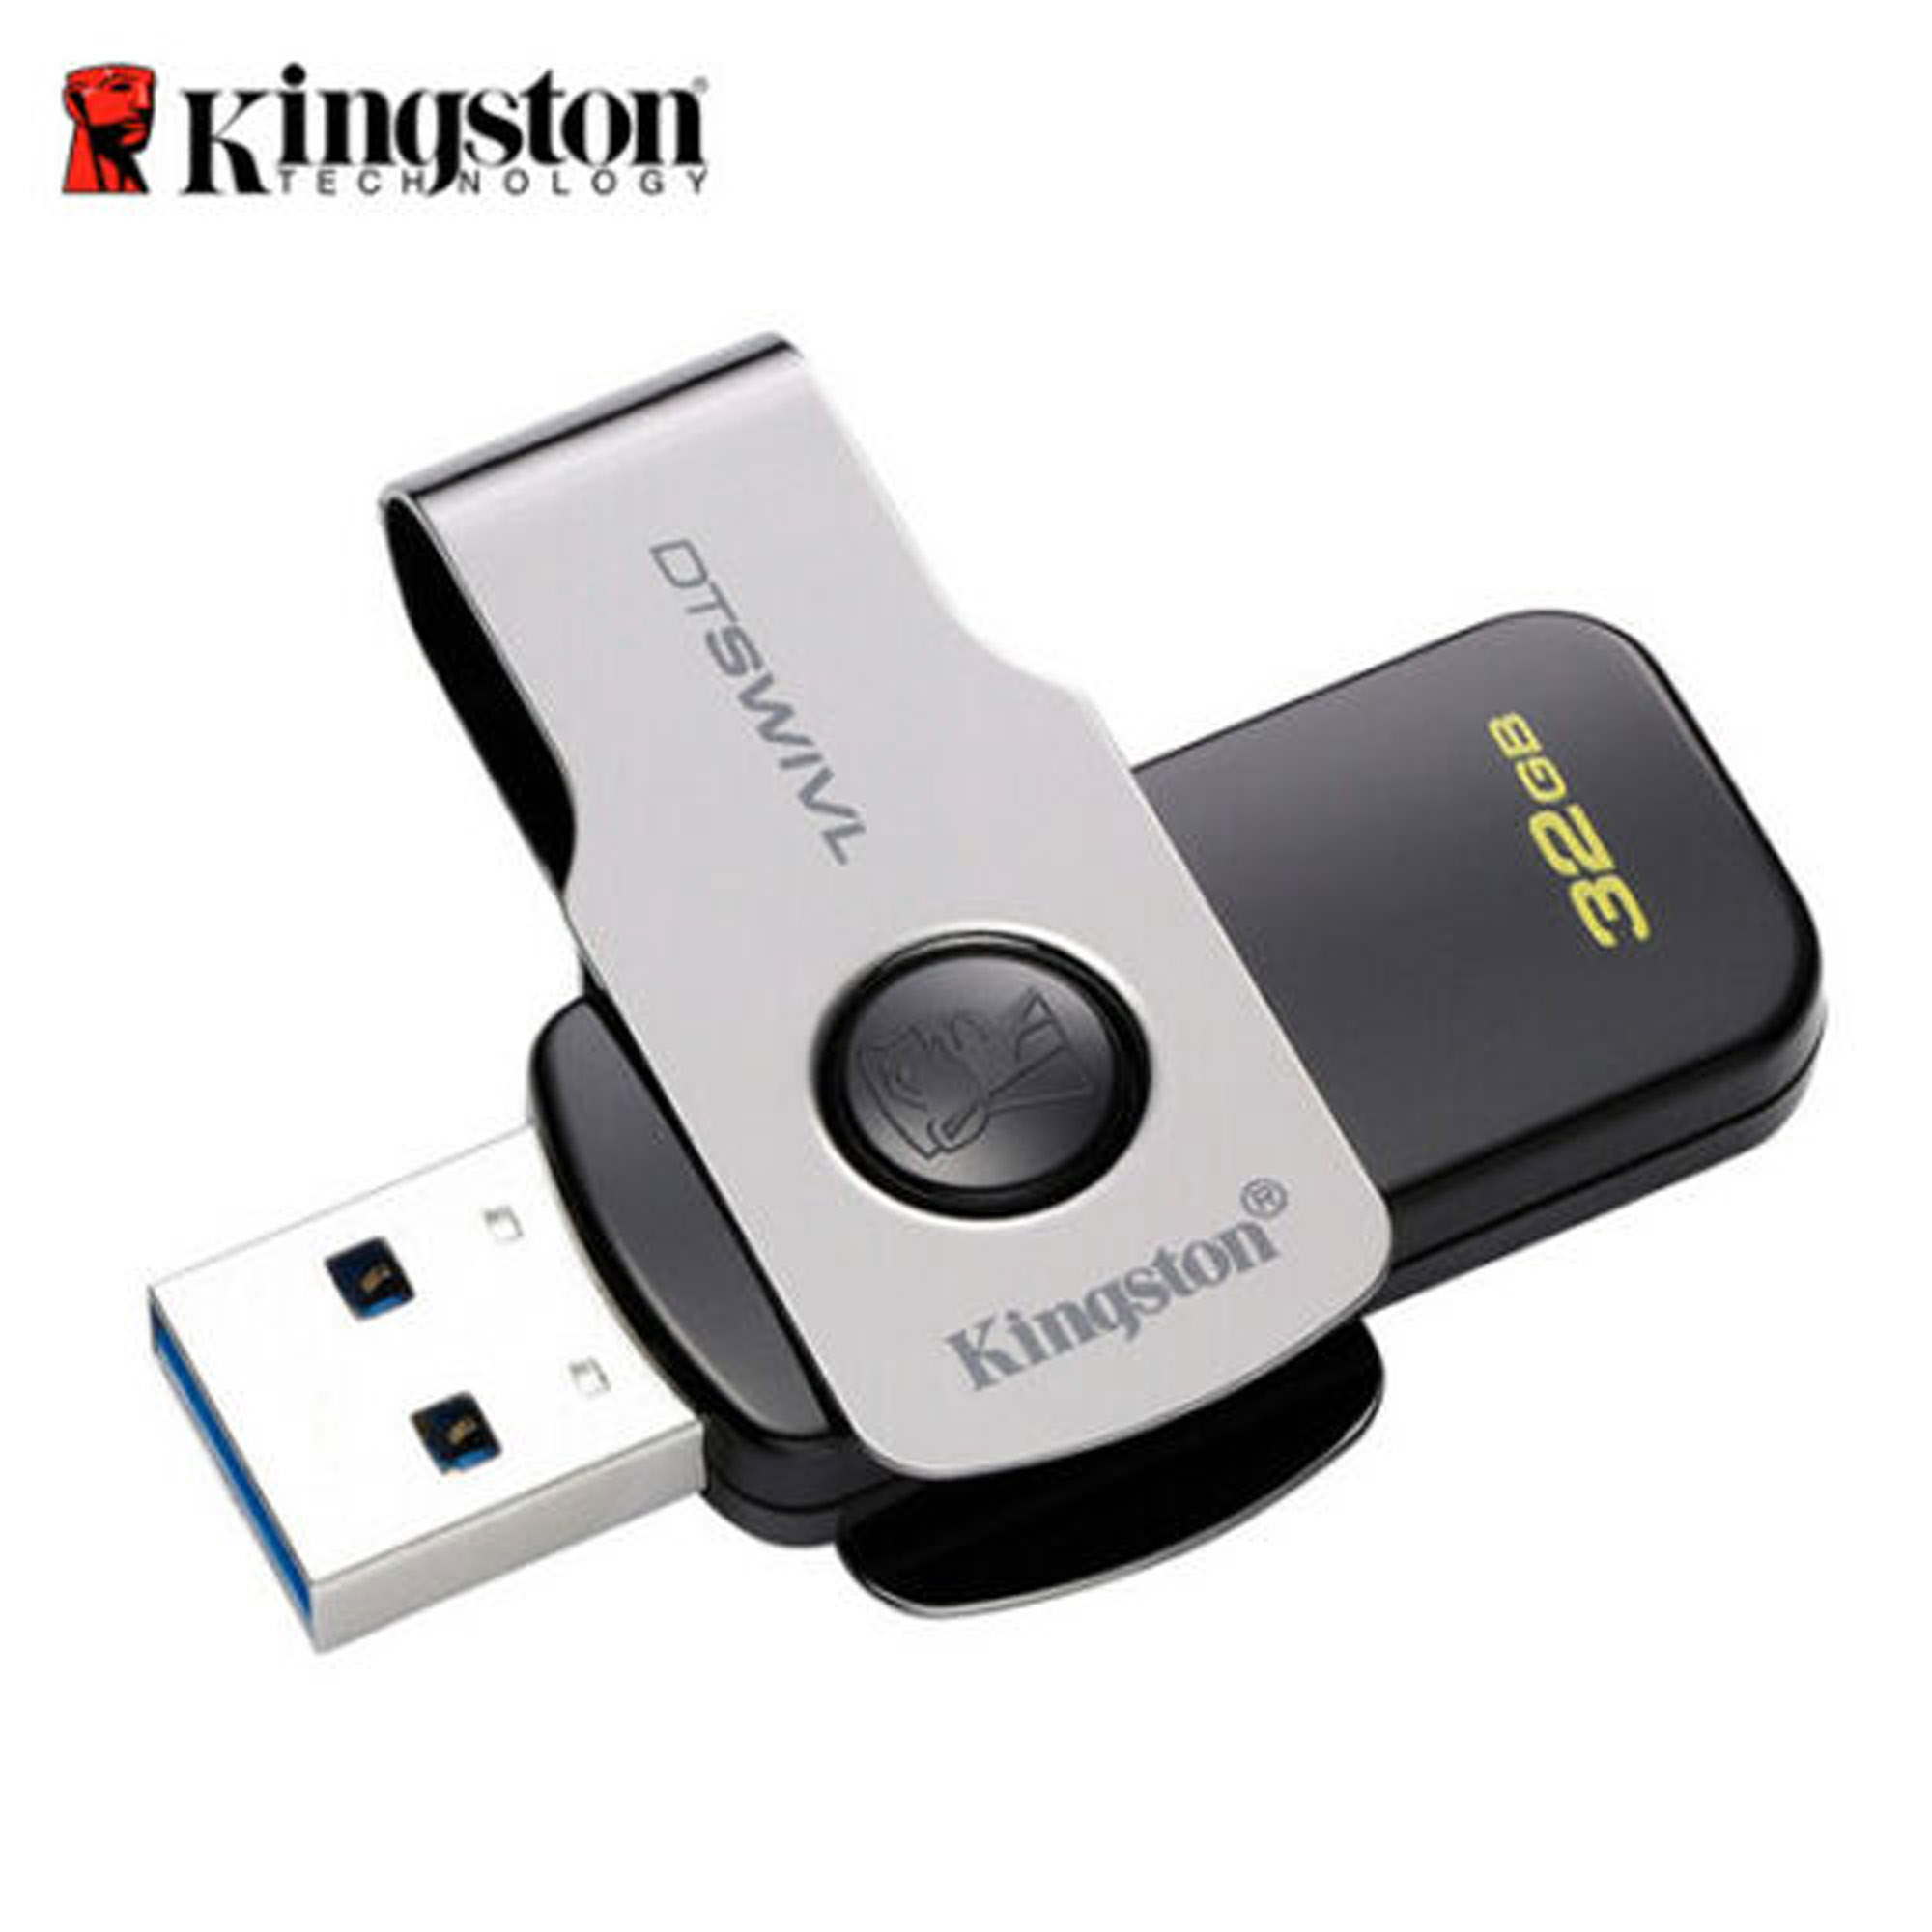 Kingston 32GB Data Traveler SWIVL USB 3.1 Capless Swivel Flash Pen Drive DTSWIVL